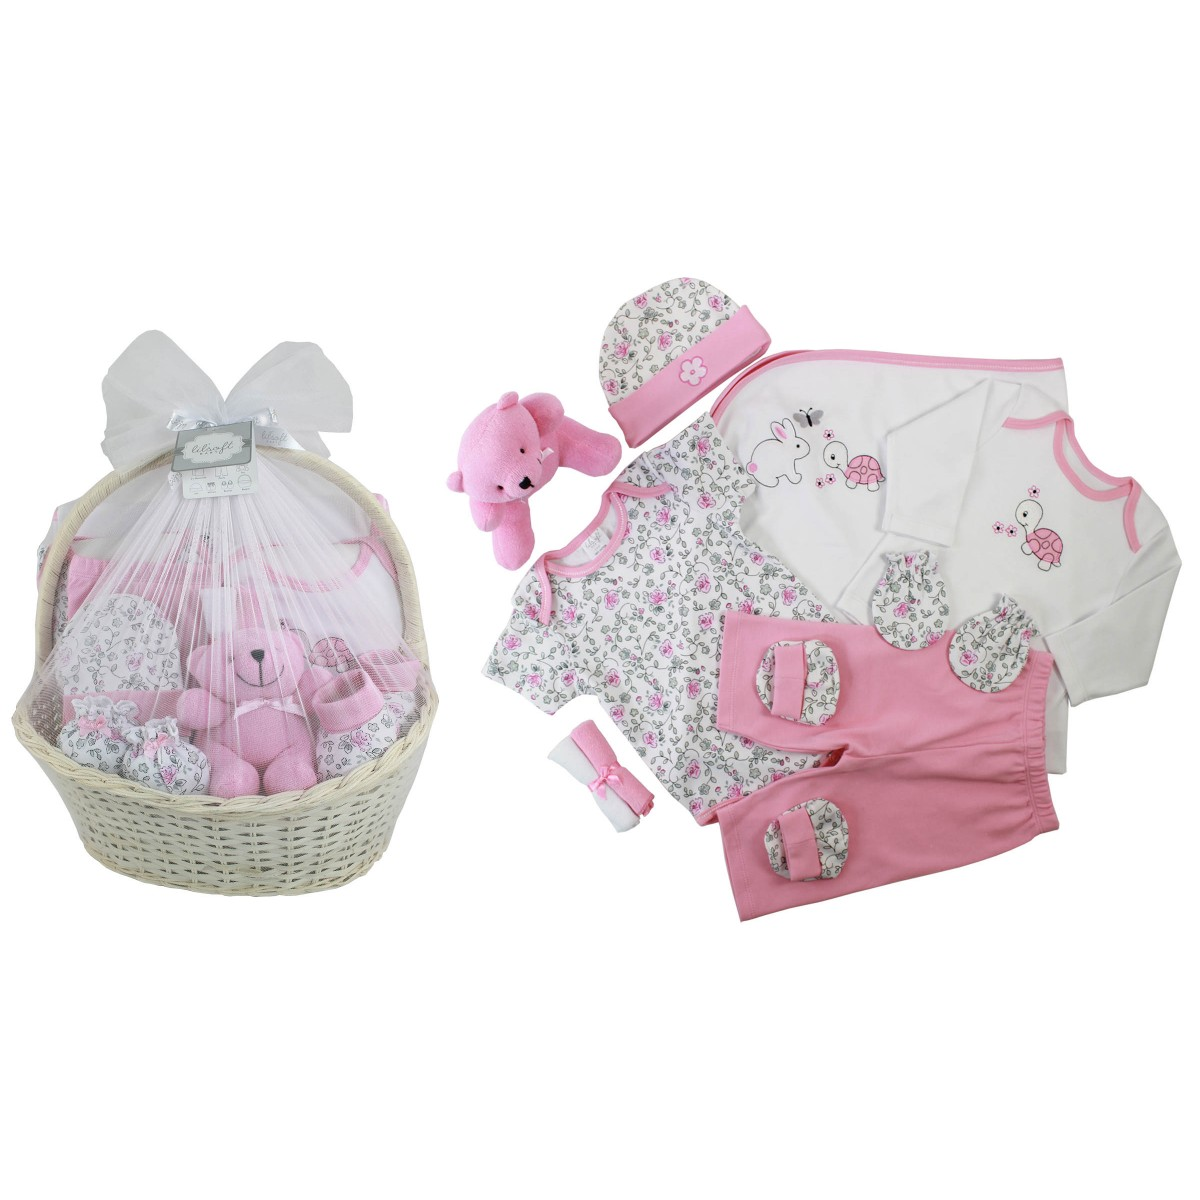 Baby Gift Set 11 Pieces : Pcs baby gift set for sets